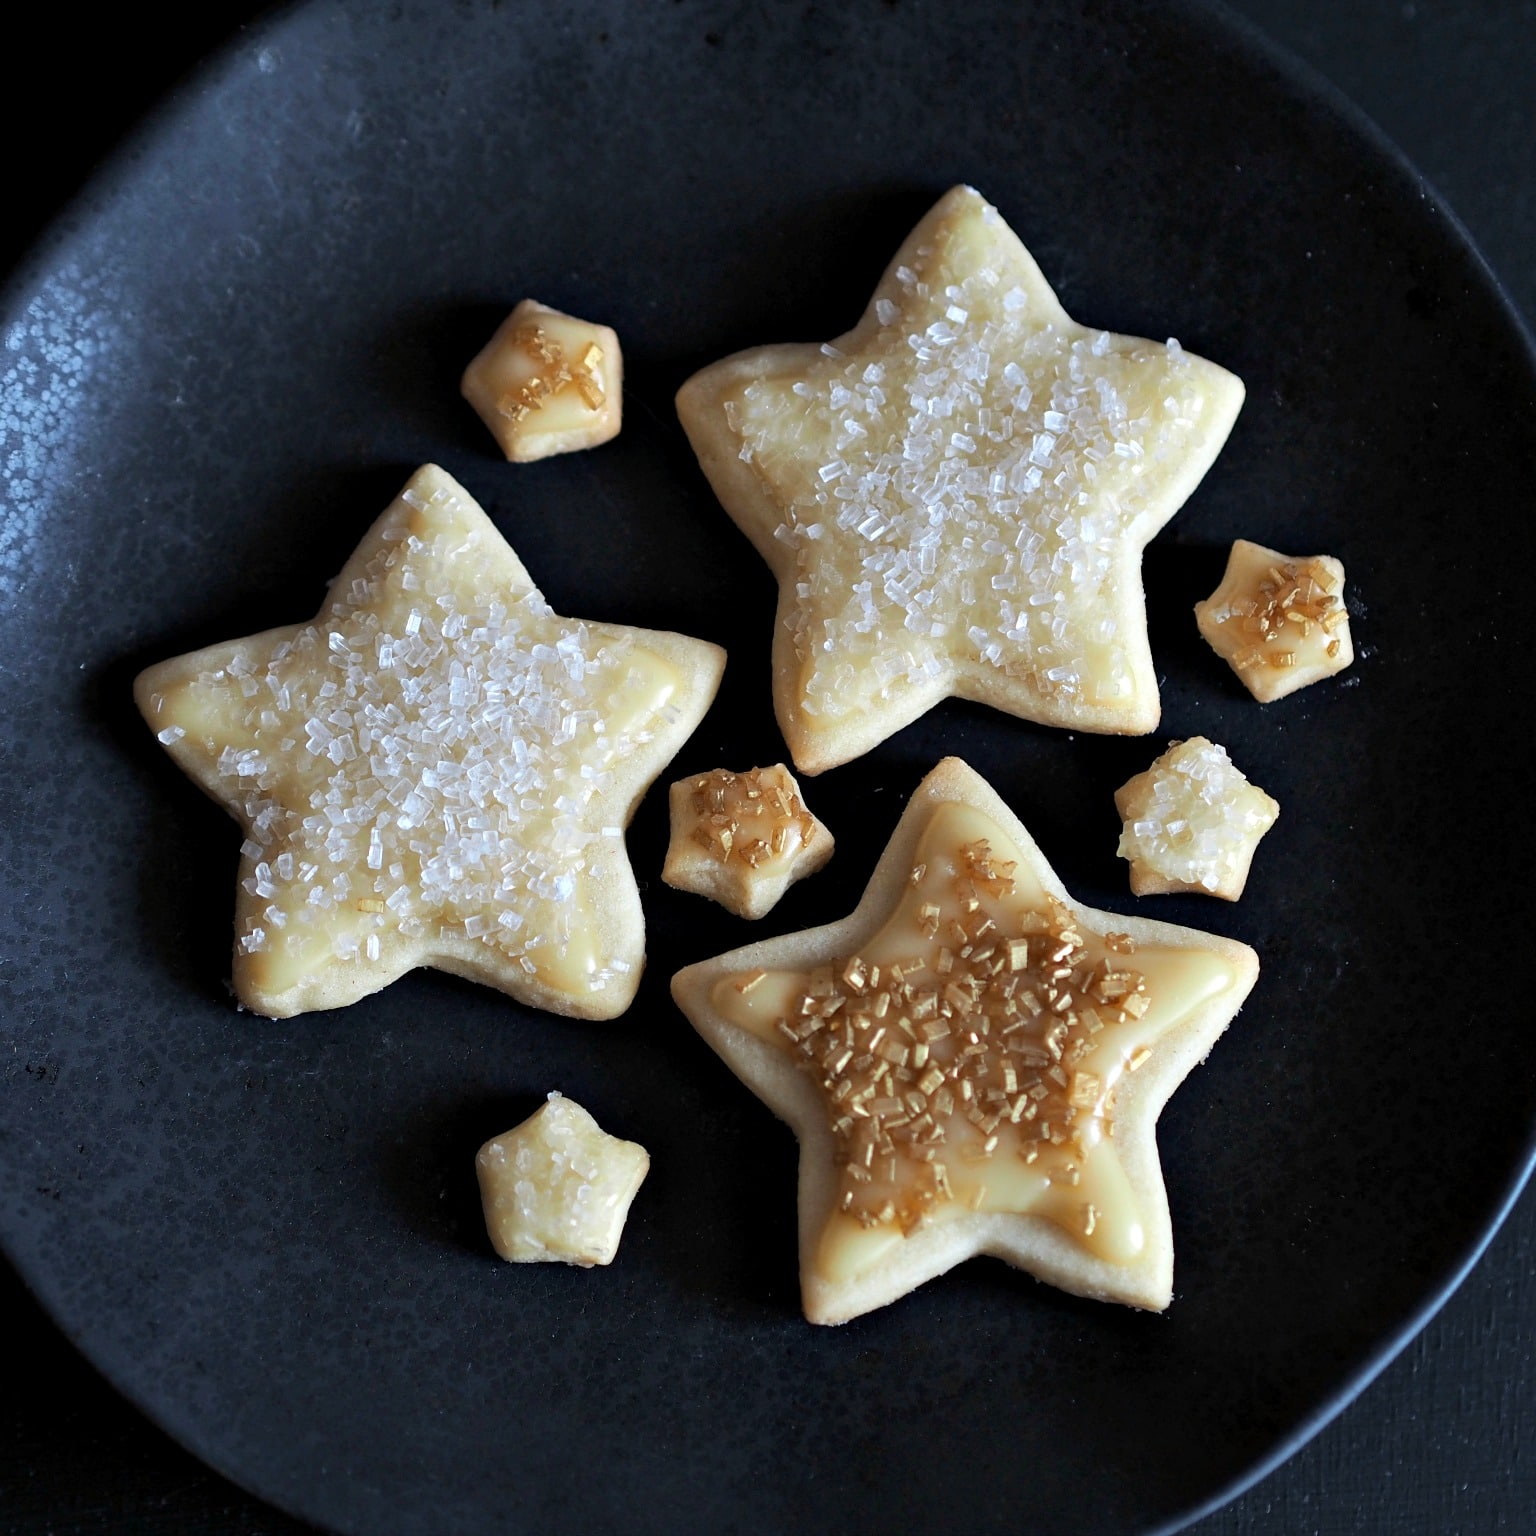 Gold Star Iced Cookies are a cookie deserving of a gold star. Tender inside & slightly crispy outside. Topped w/a simple corn syrup glaze & sanding sugar. Simply Sated